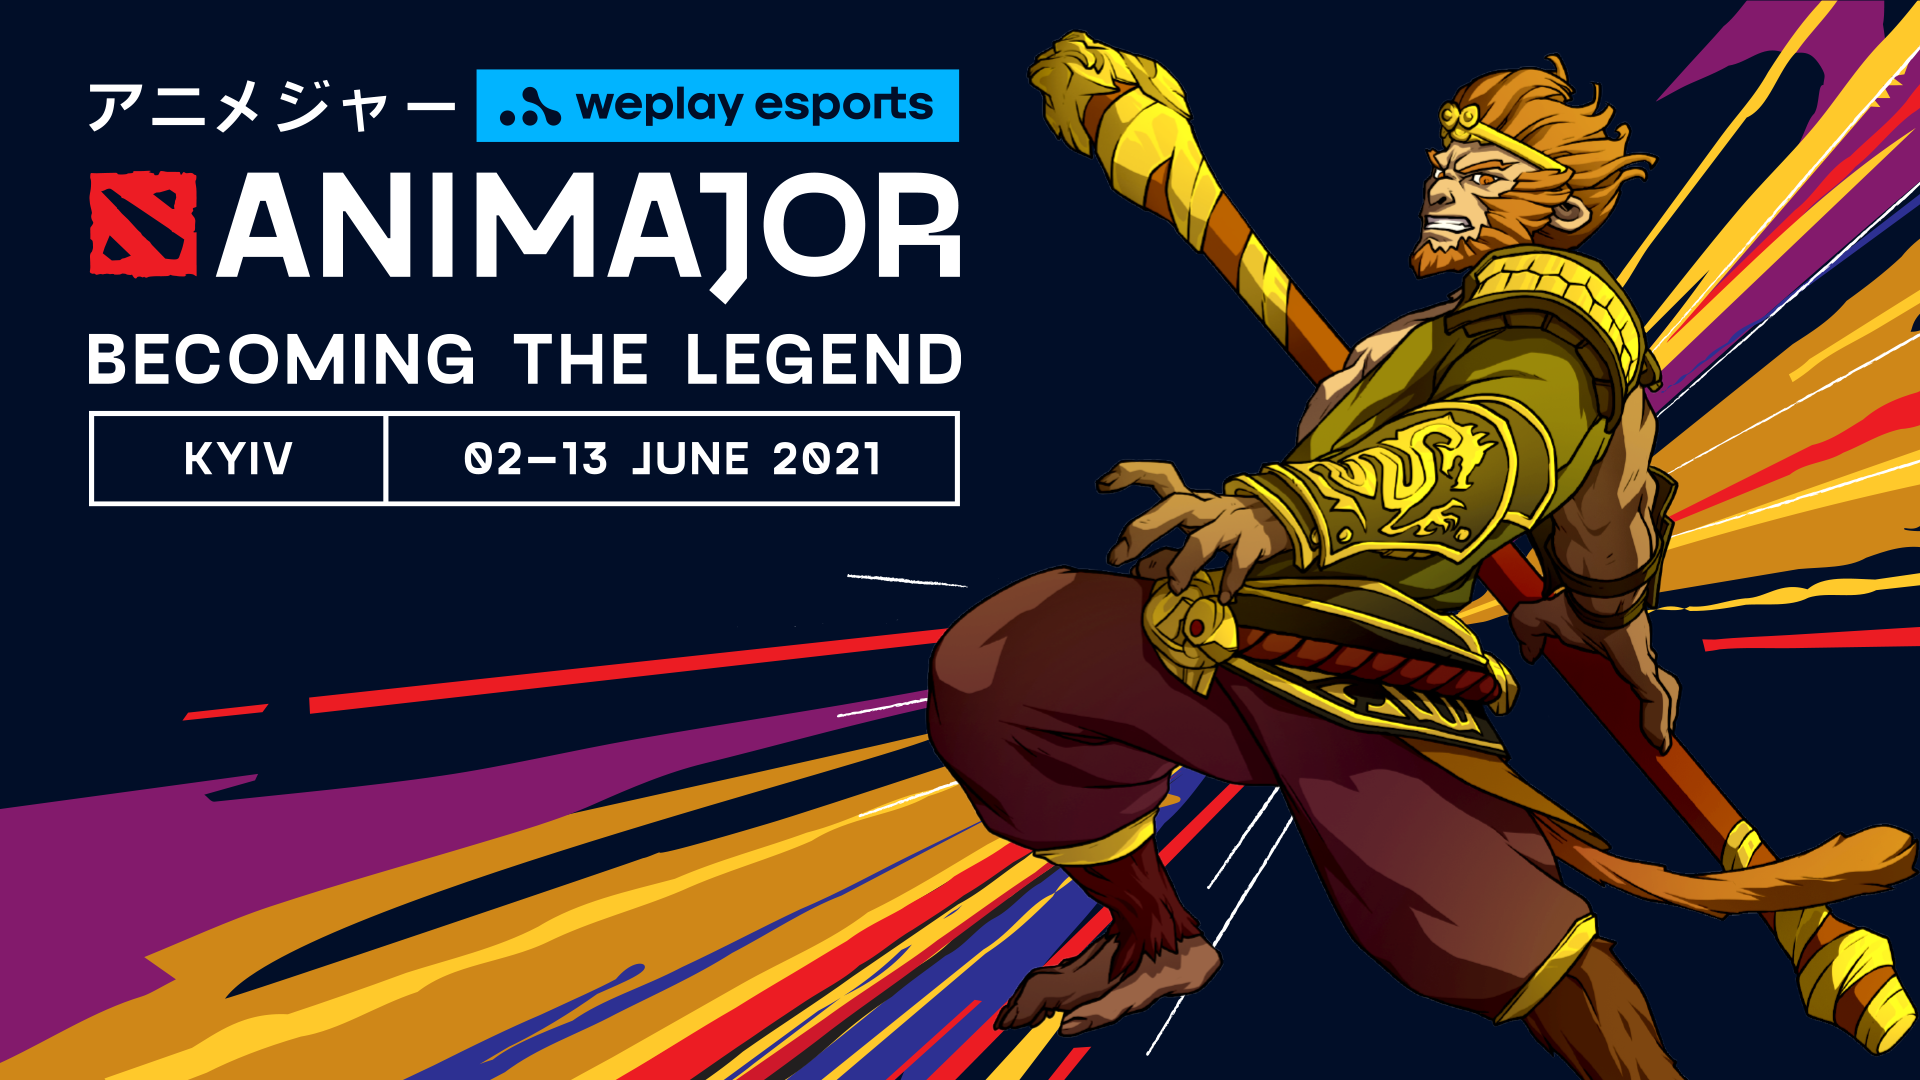 WePlay AniMajor is the next Dota Pro Circuit tournament from WePlay Esports